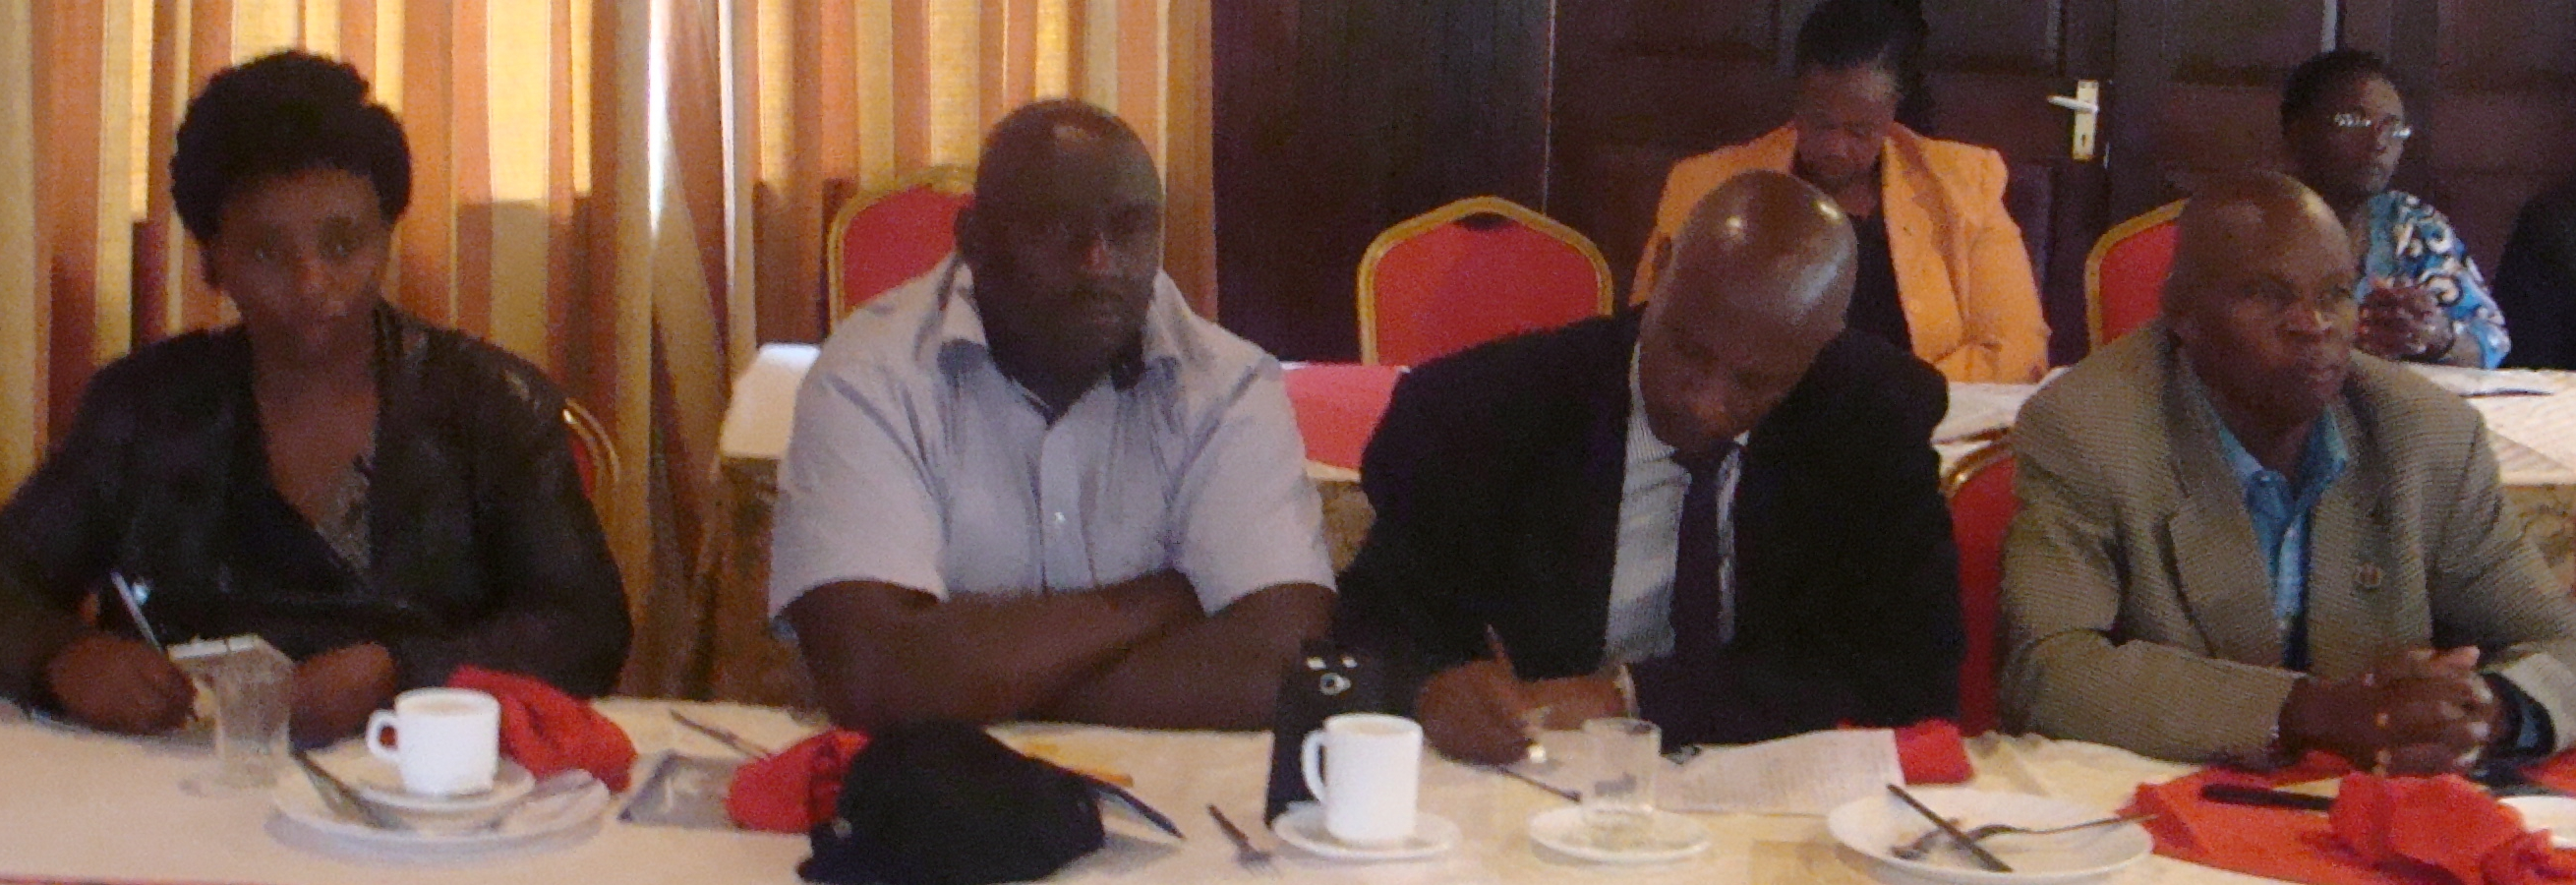 Members keenly following the discussion as they take a cup of tea